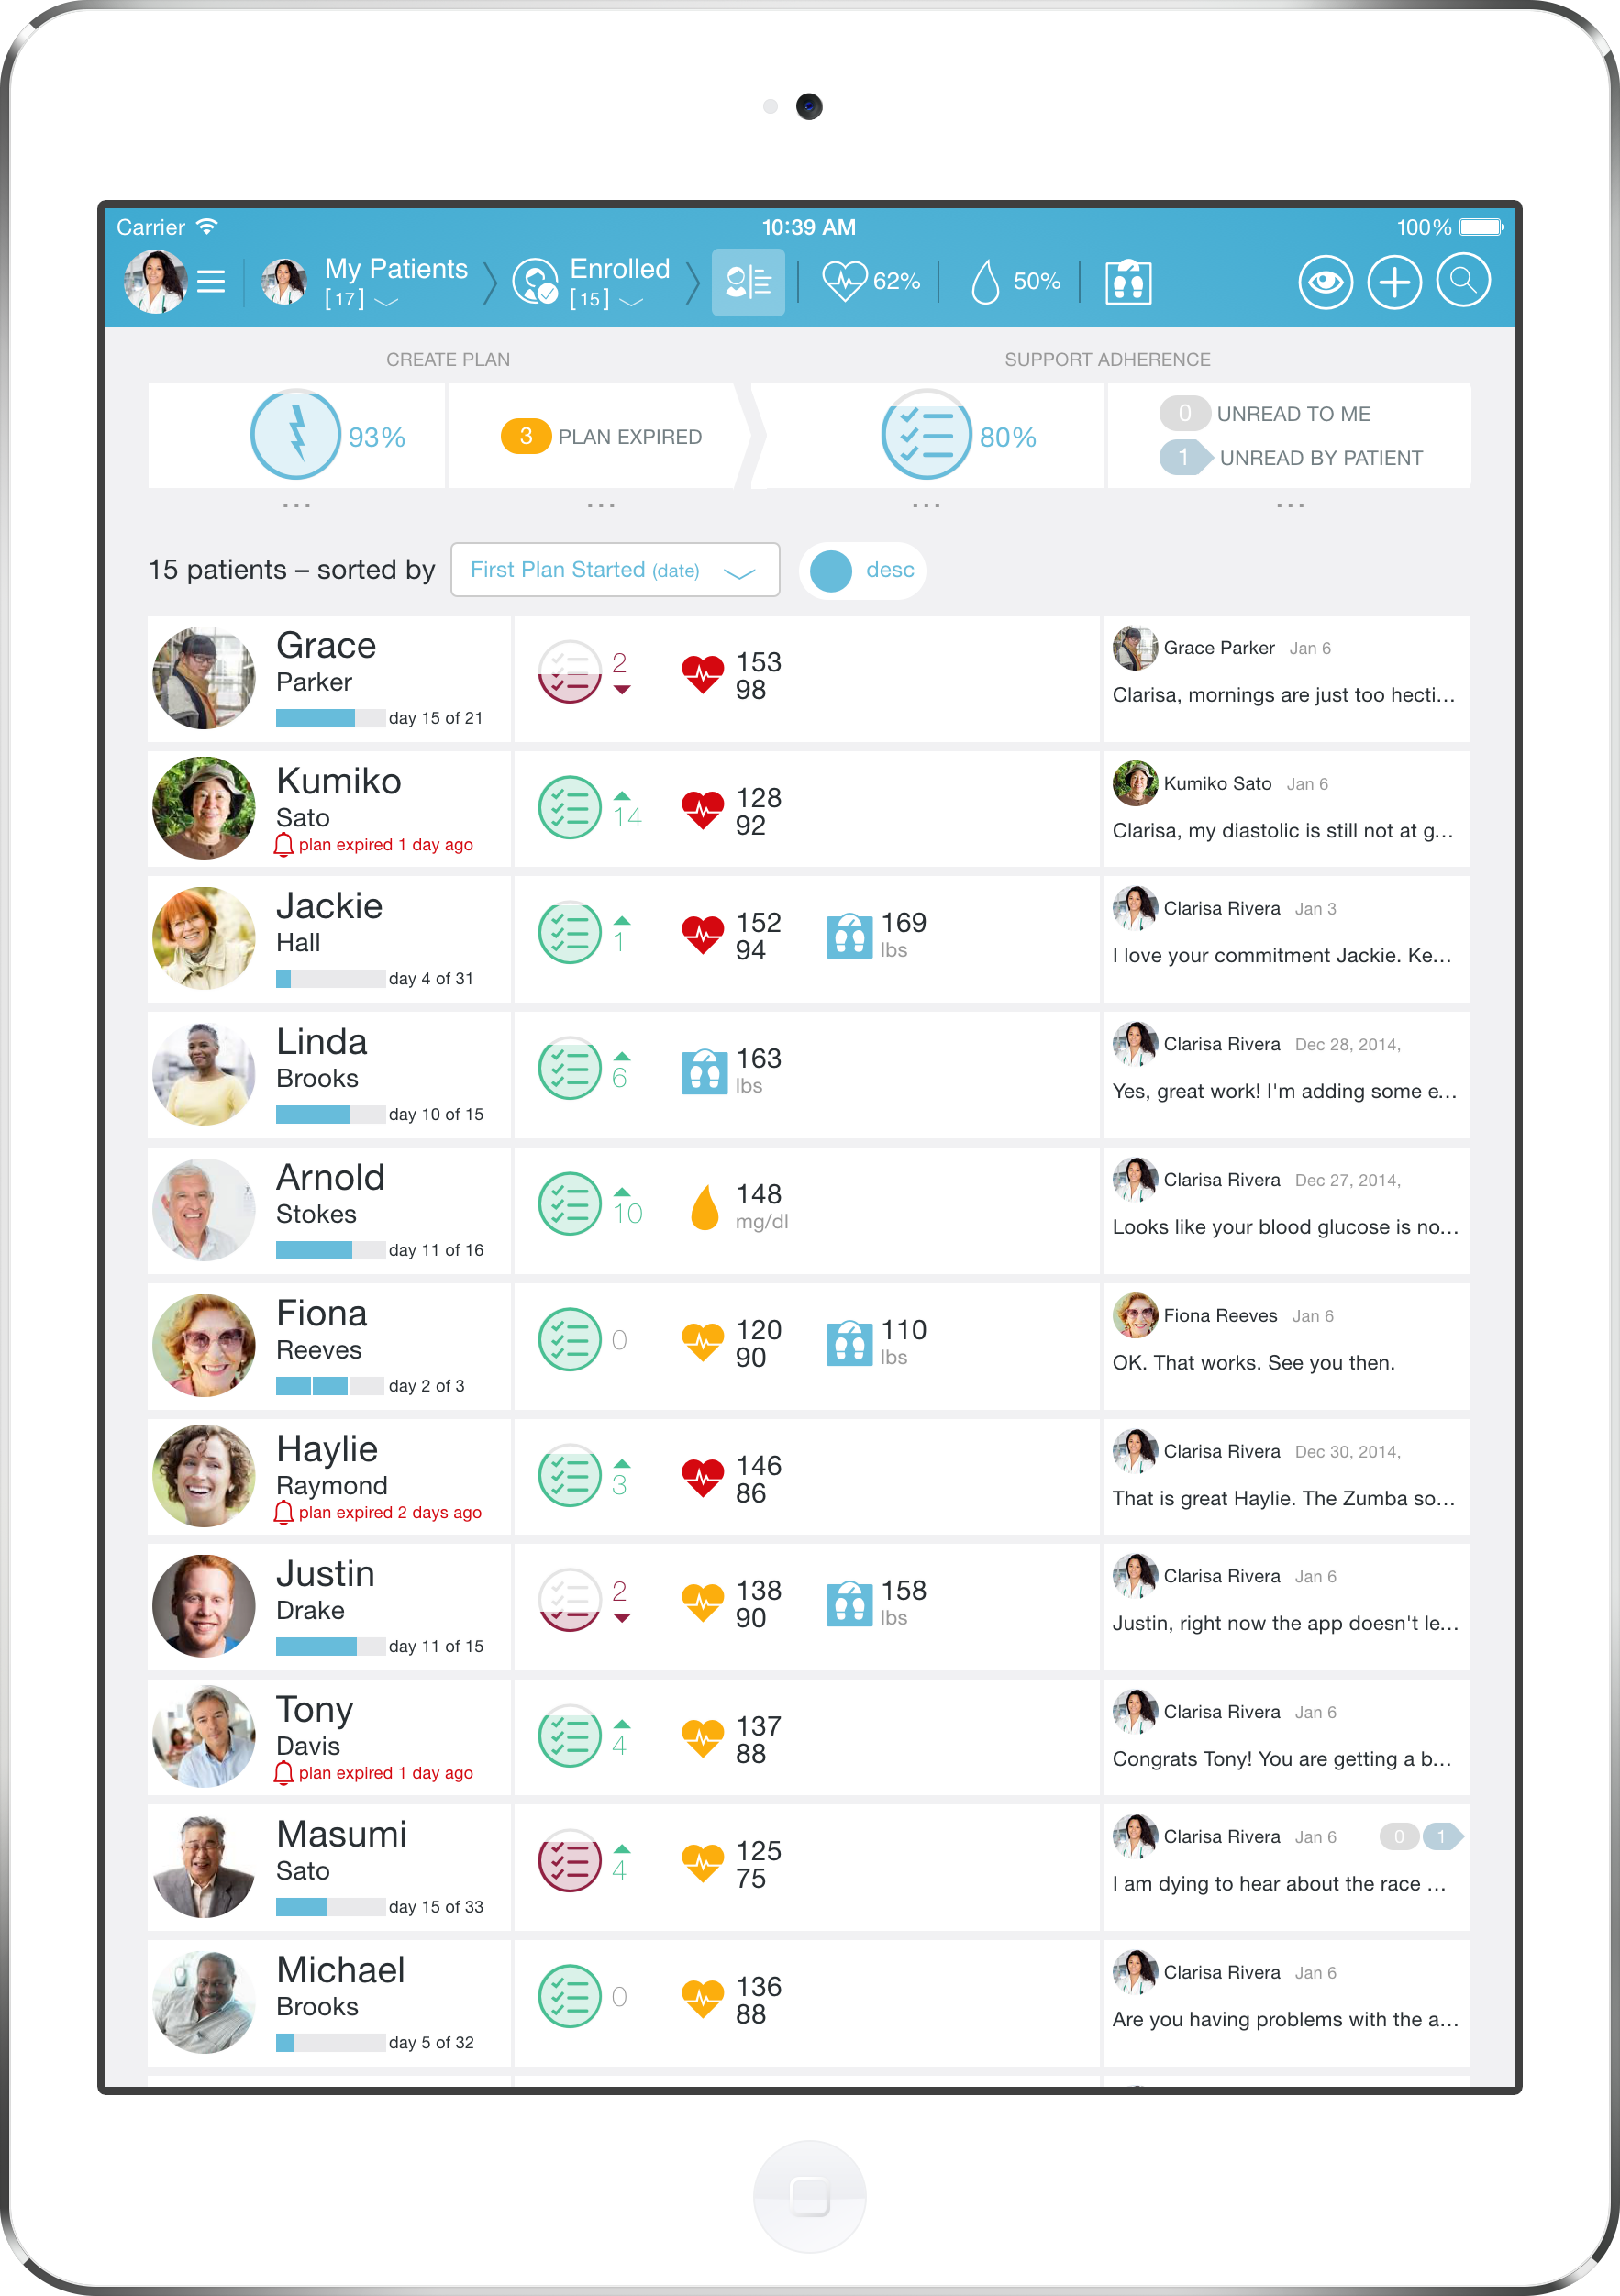 Brigham and Women's Primary Practice Pilots New Mobile App